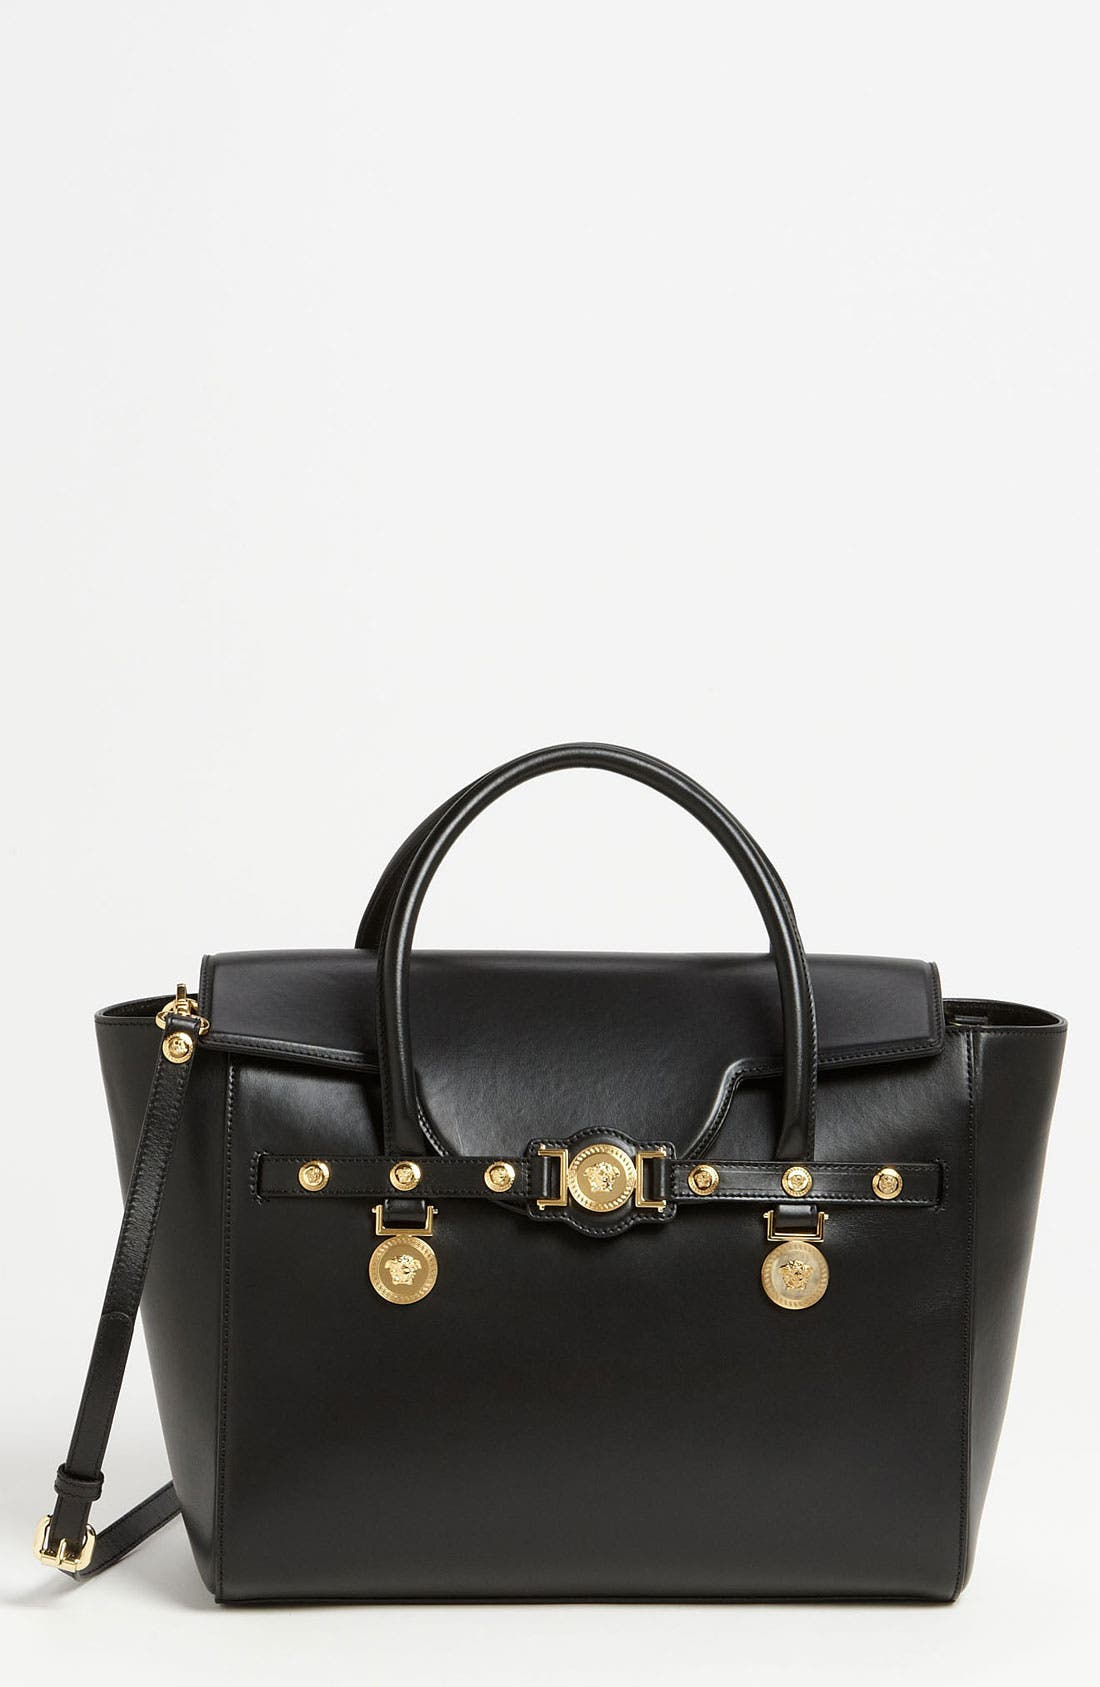 Alternate Image 1 Selected - Versace 'Classic' Leather Satchel